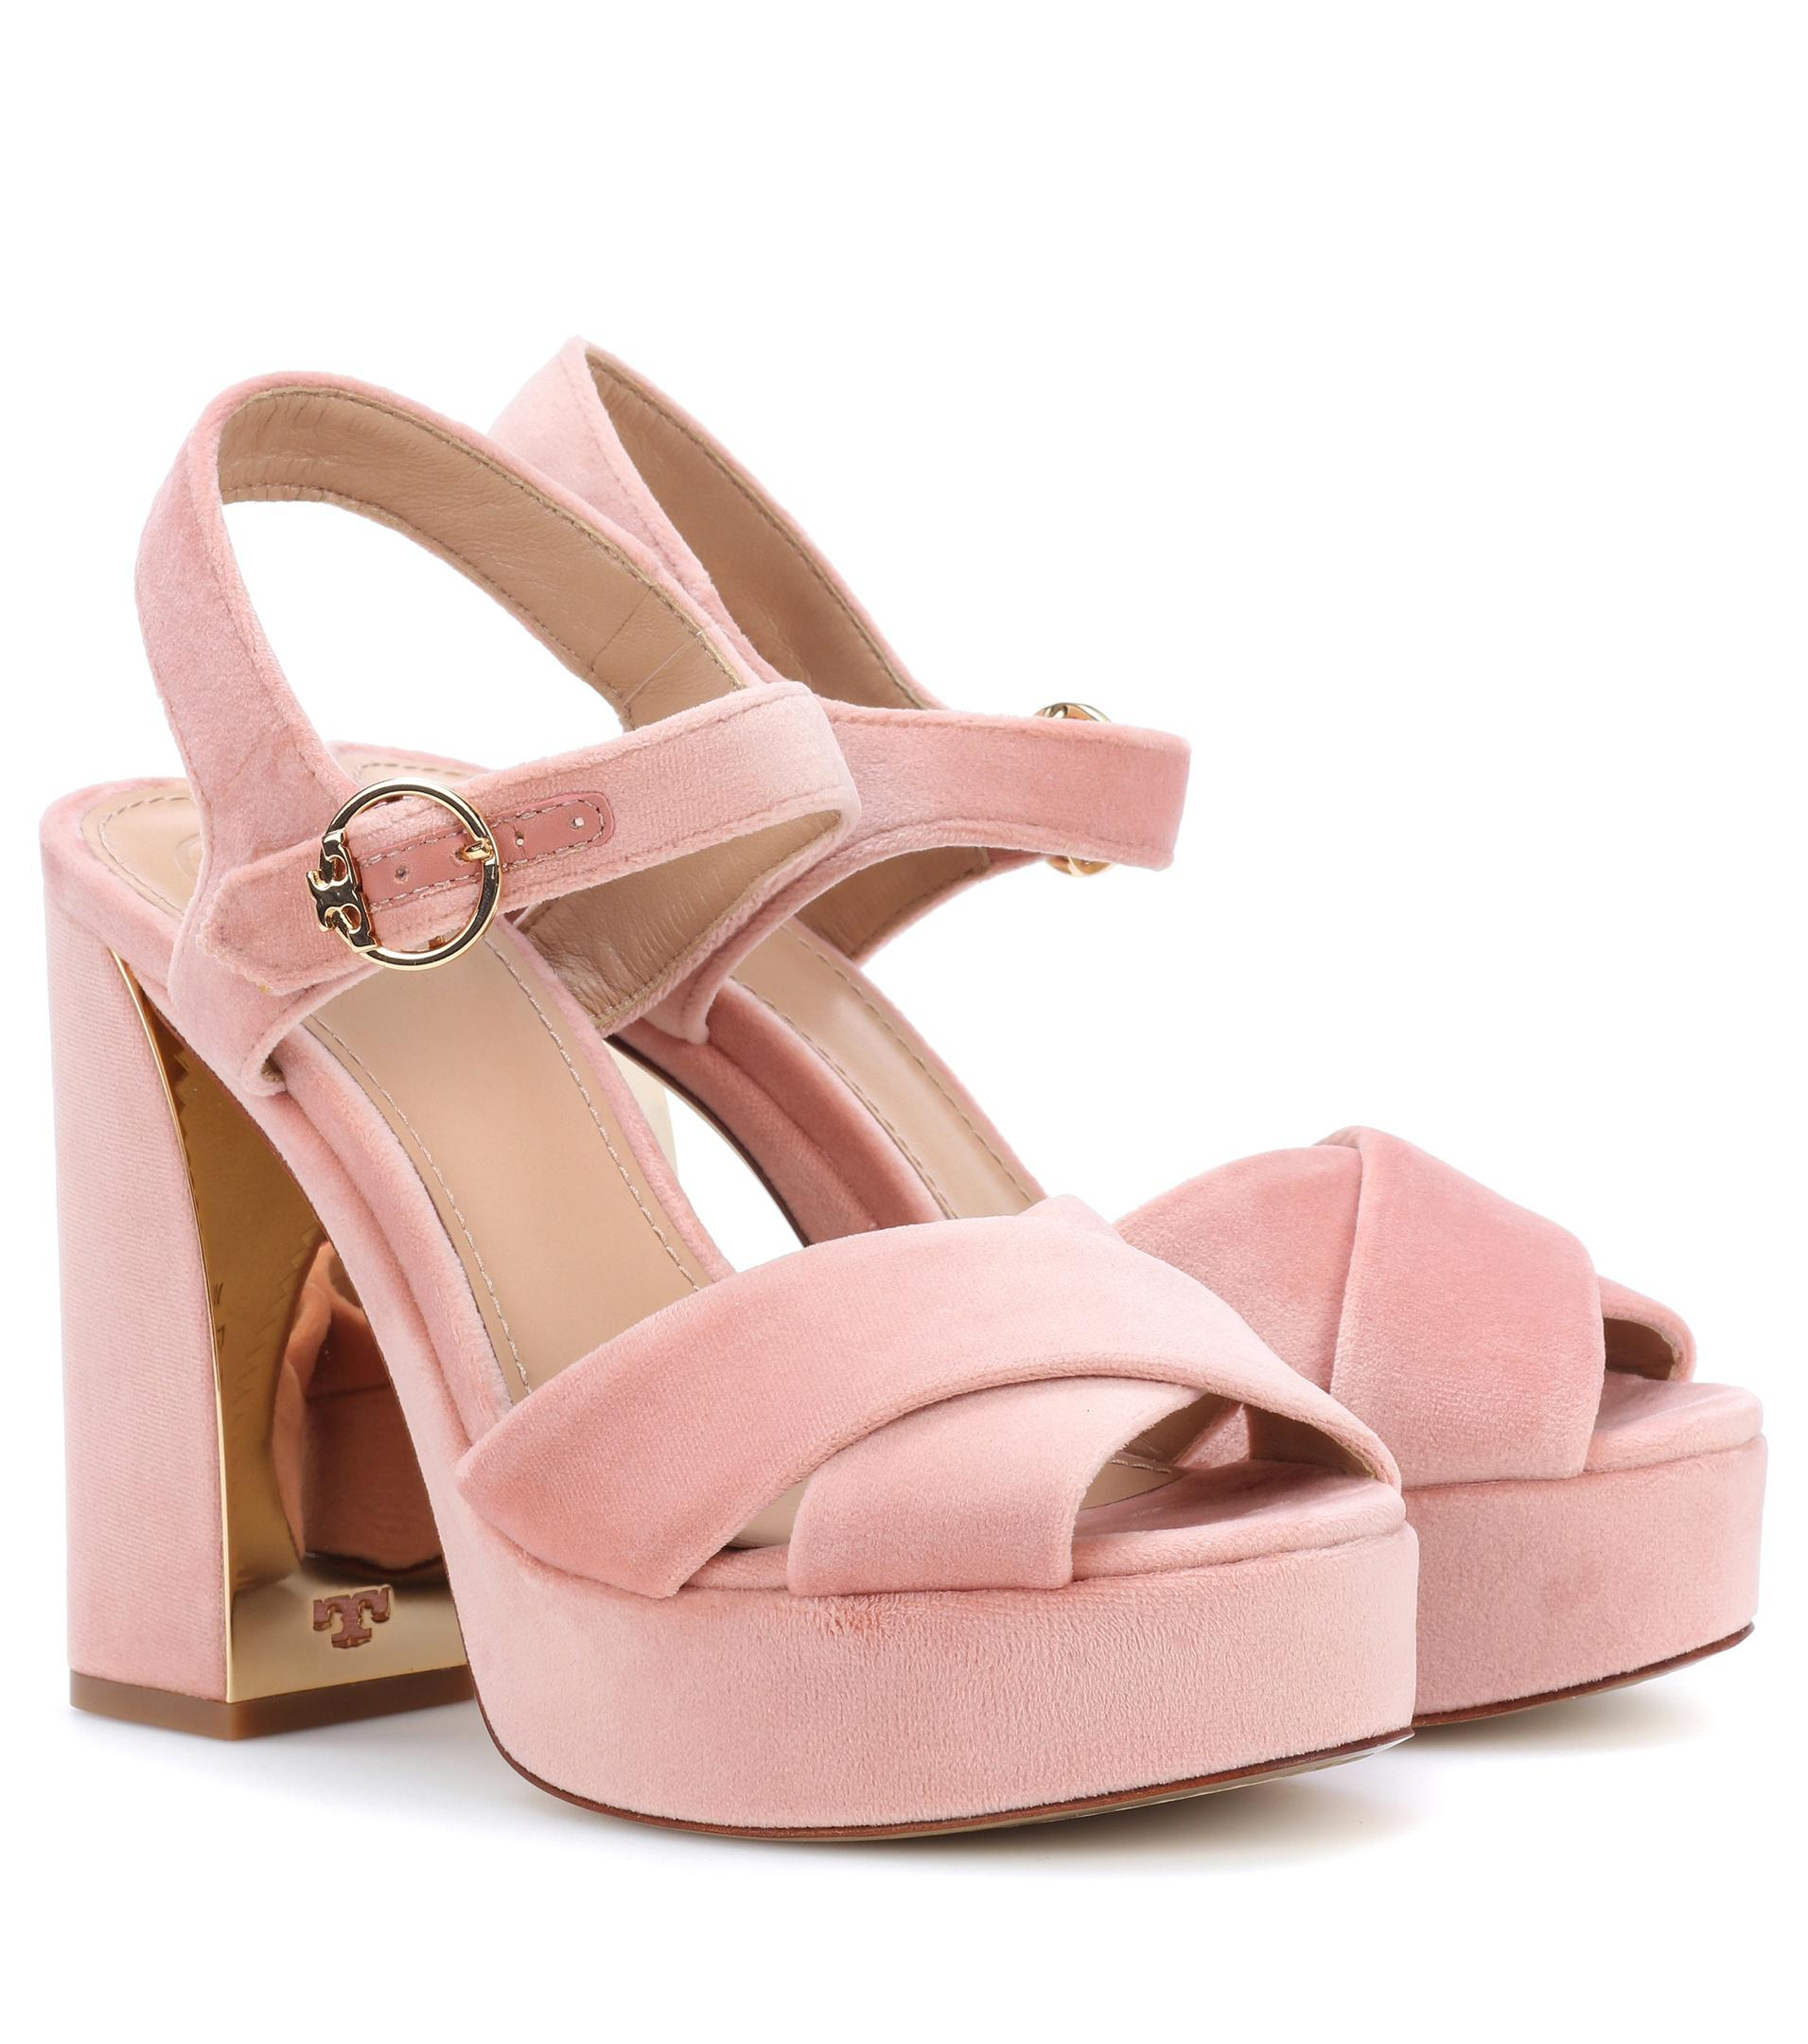 Cheap Get To Buy Loretta platform sandals - Pink & Purple Tory Burch Cheap Discount Sale Pay With Paypal Sale Online Cheap Sale Lowest Price lyKJm